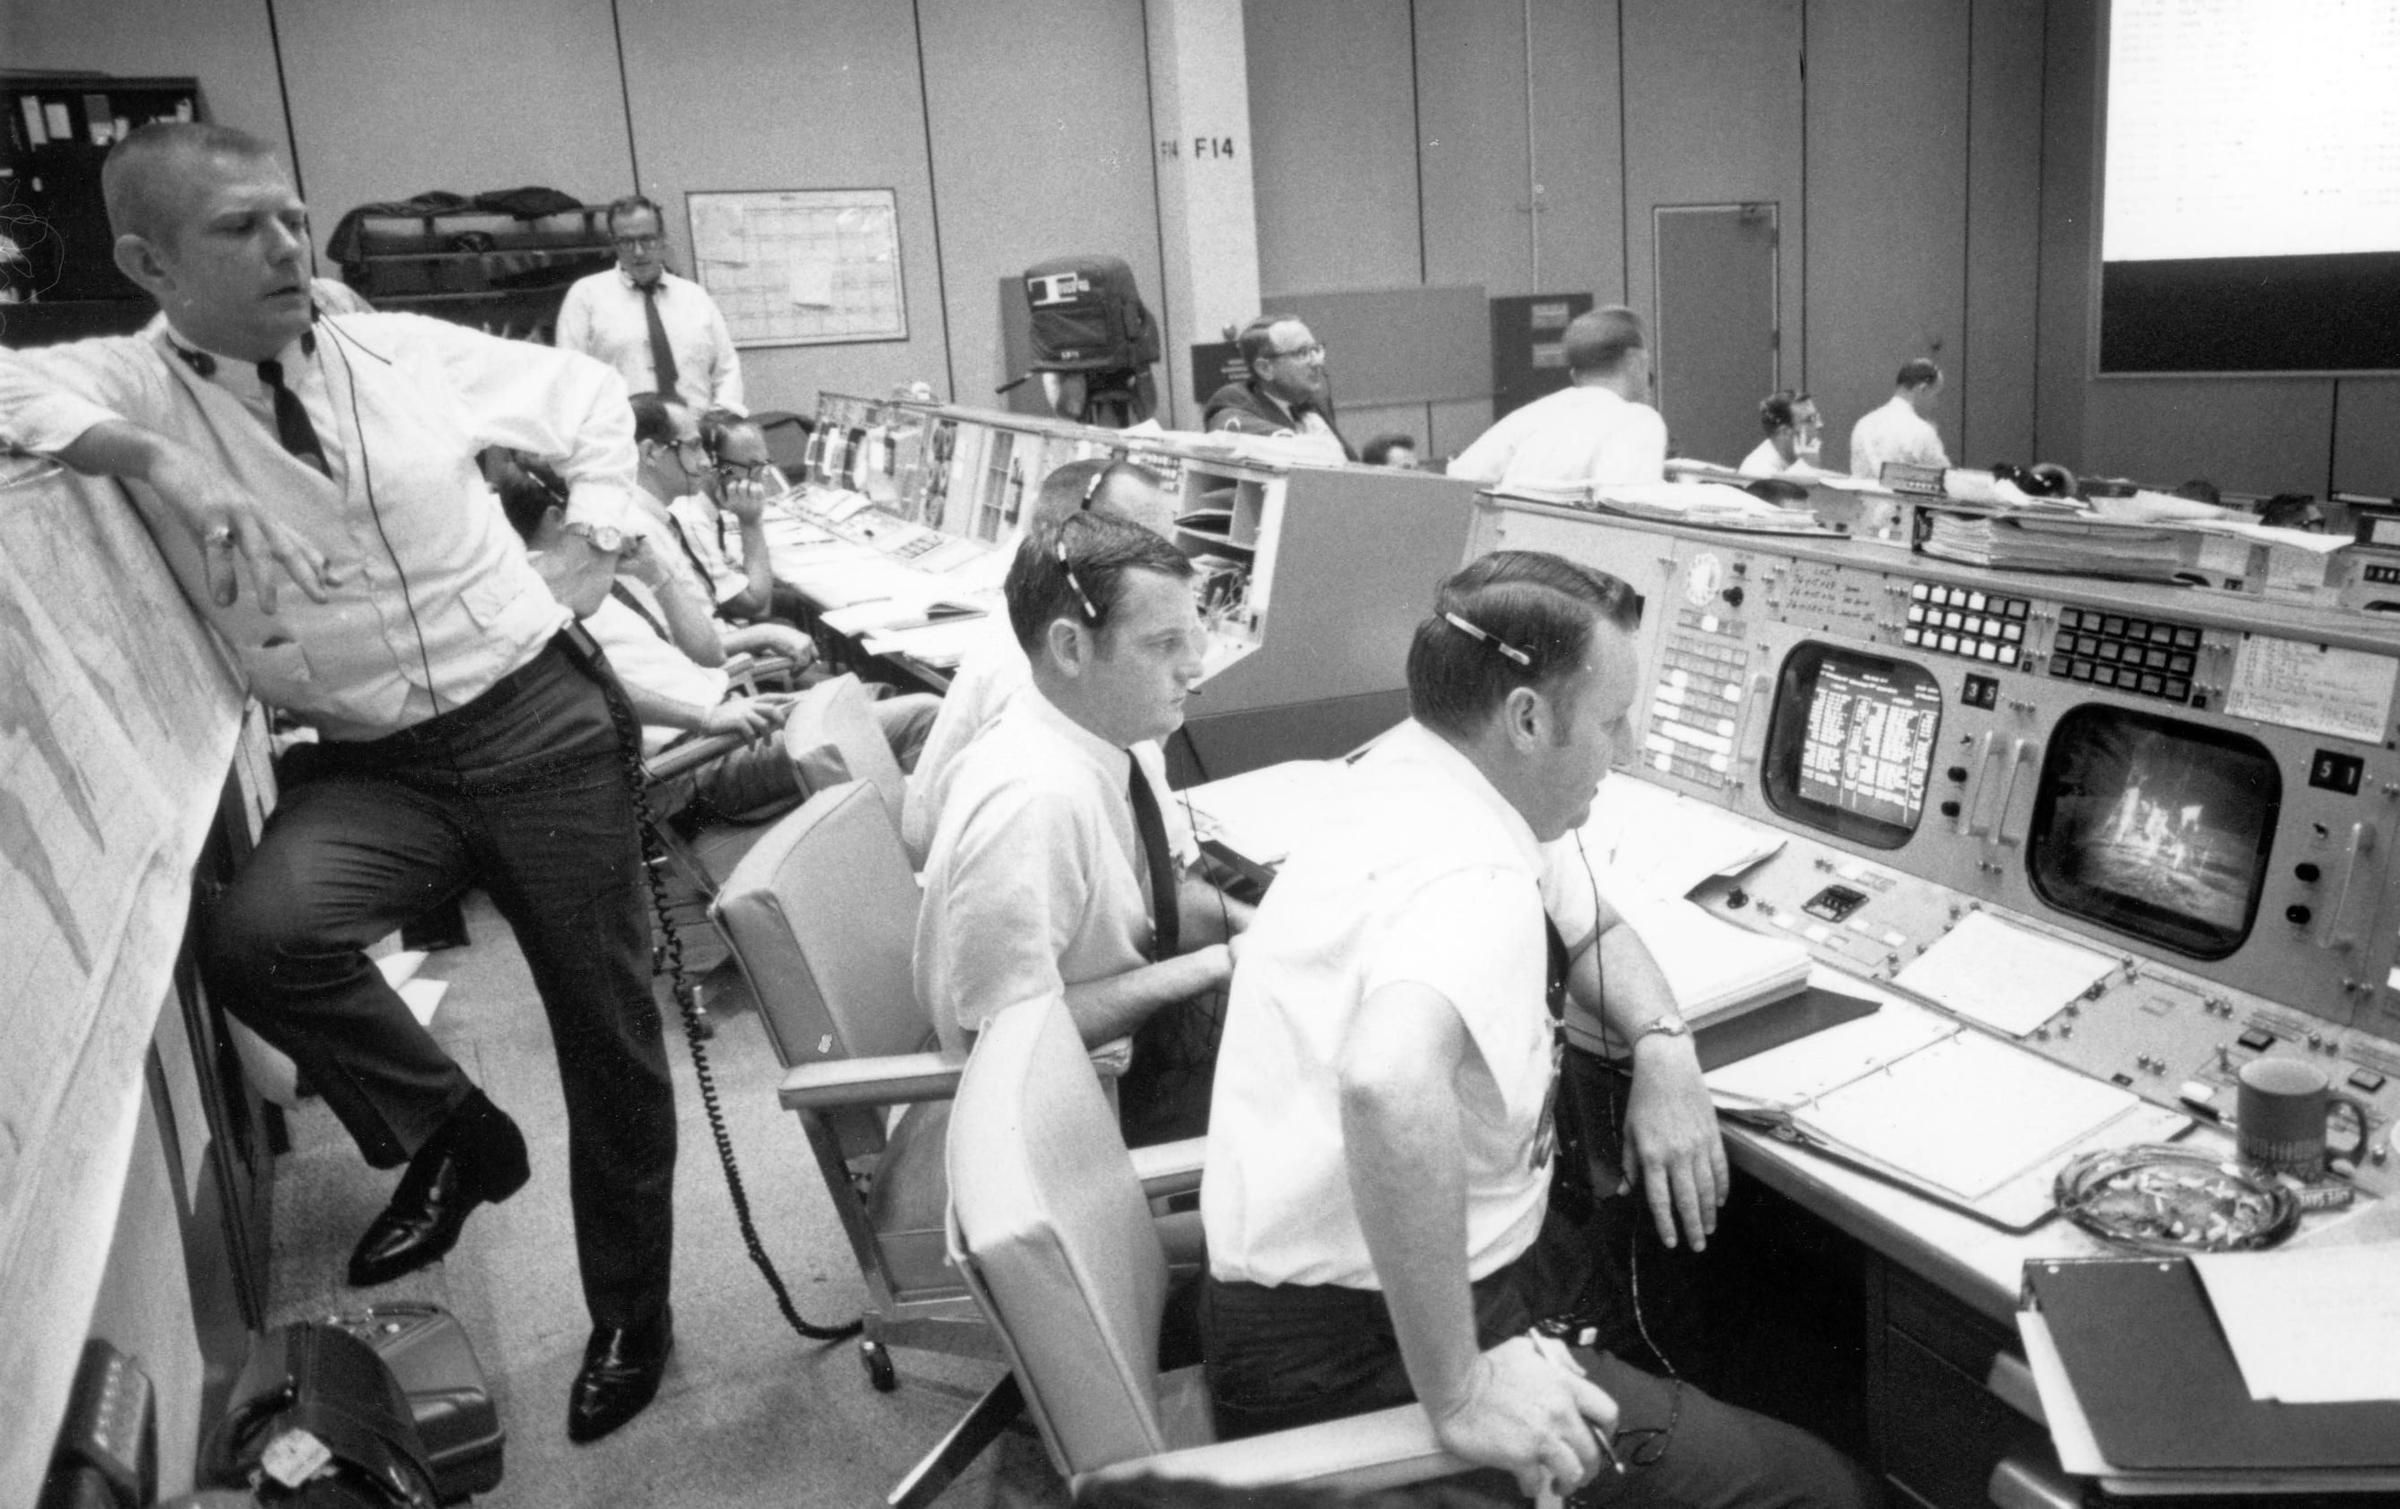 essays on apollo 13 decision-making Read this essay on group dynamics apollo 13 come browse our large digital warehouse of free sample essays get the knowledge you need in order to pass your classes and more only at termpaperwarehousecom.